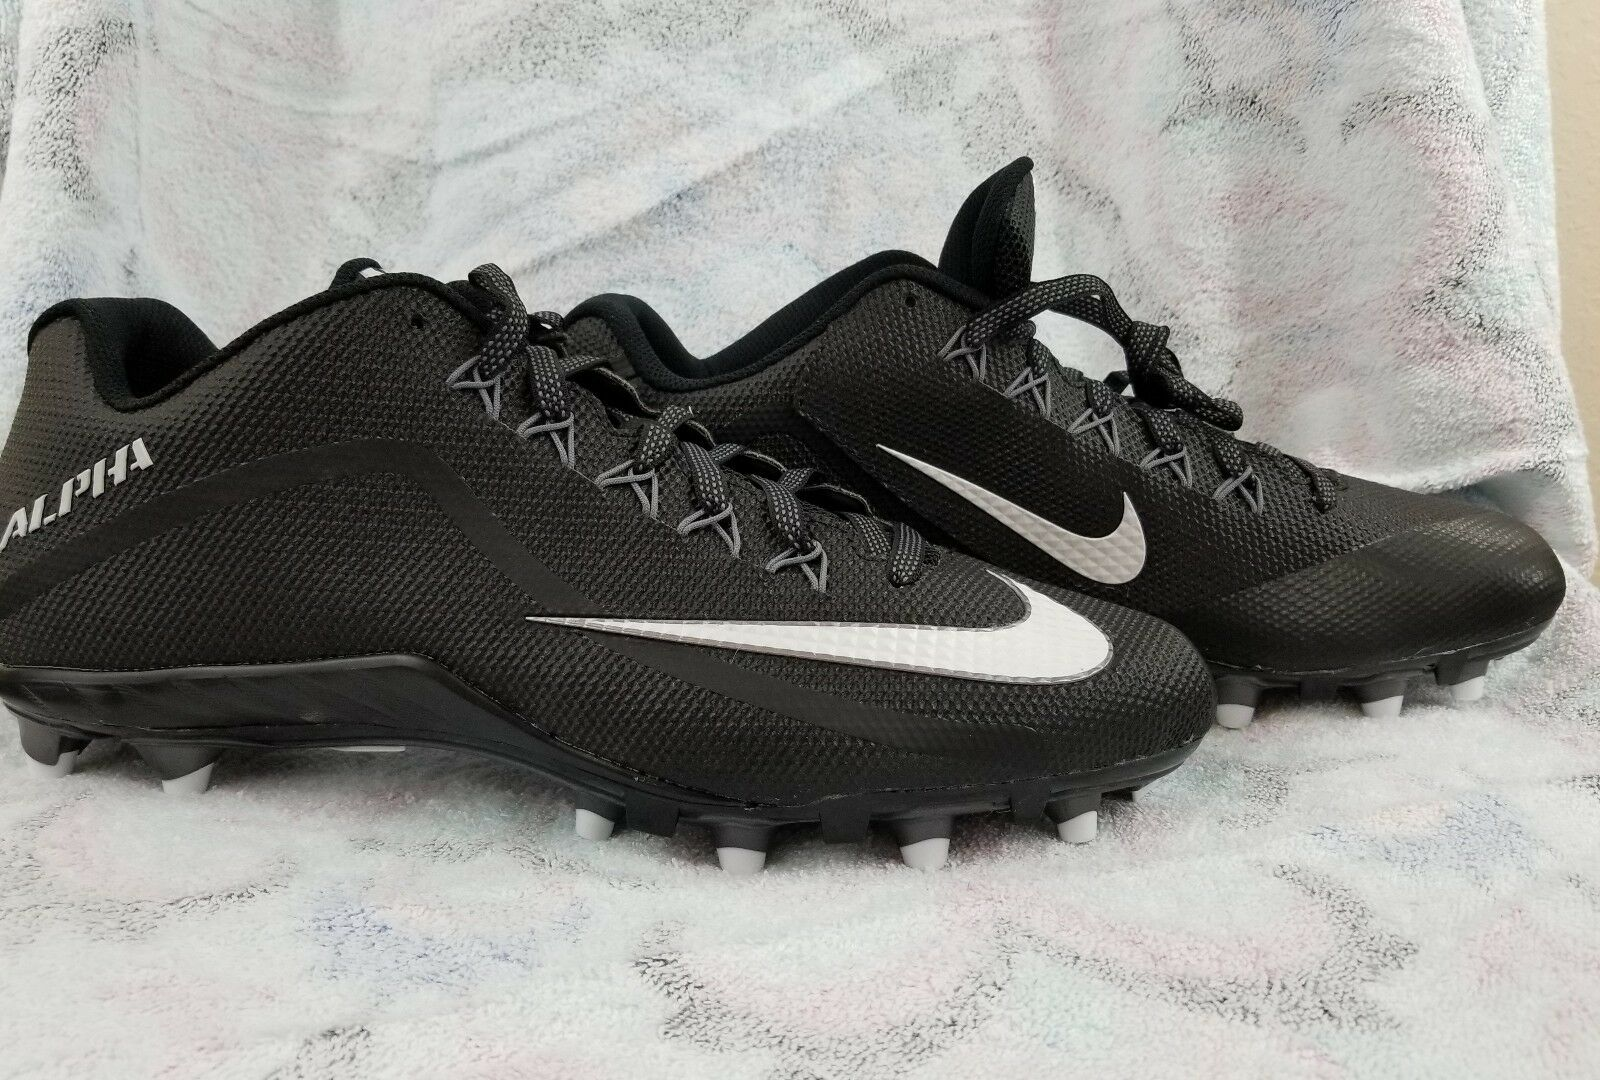 Mens Nike Football Cleats Alpha Pro Fly Wire Men's Comfortable